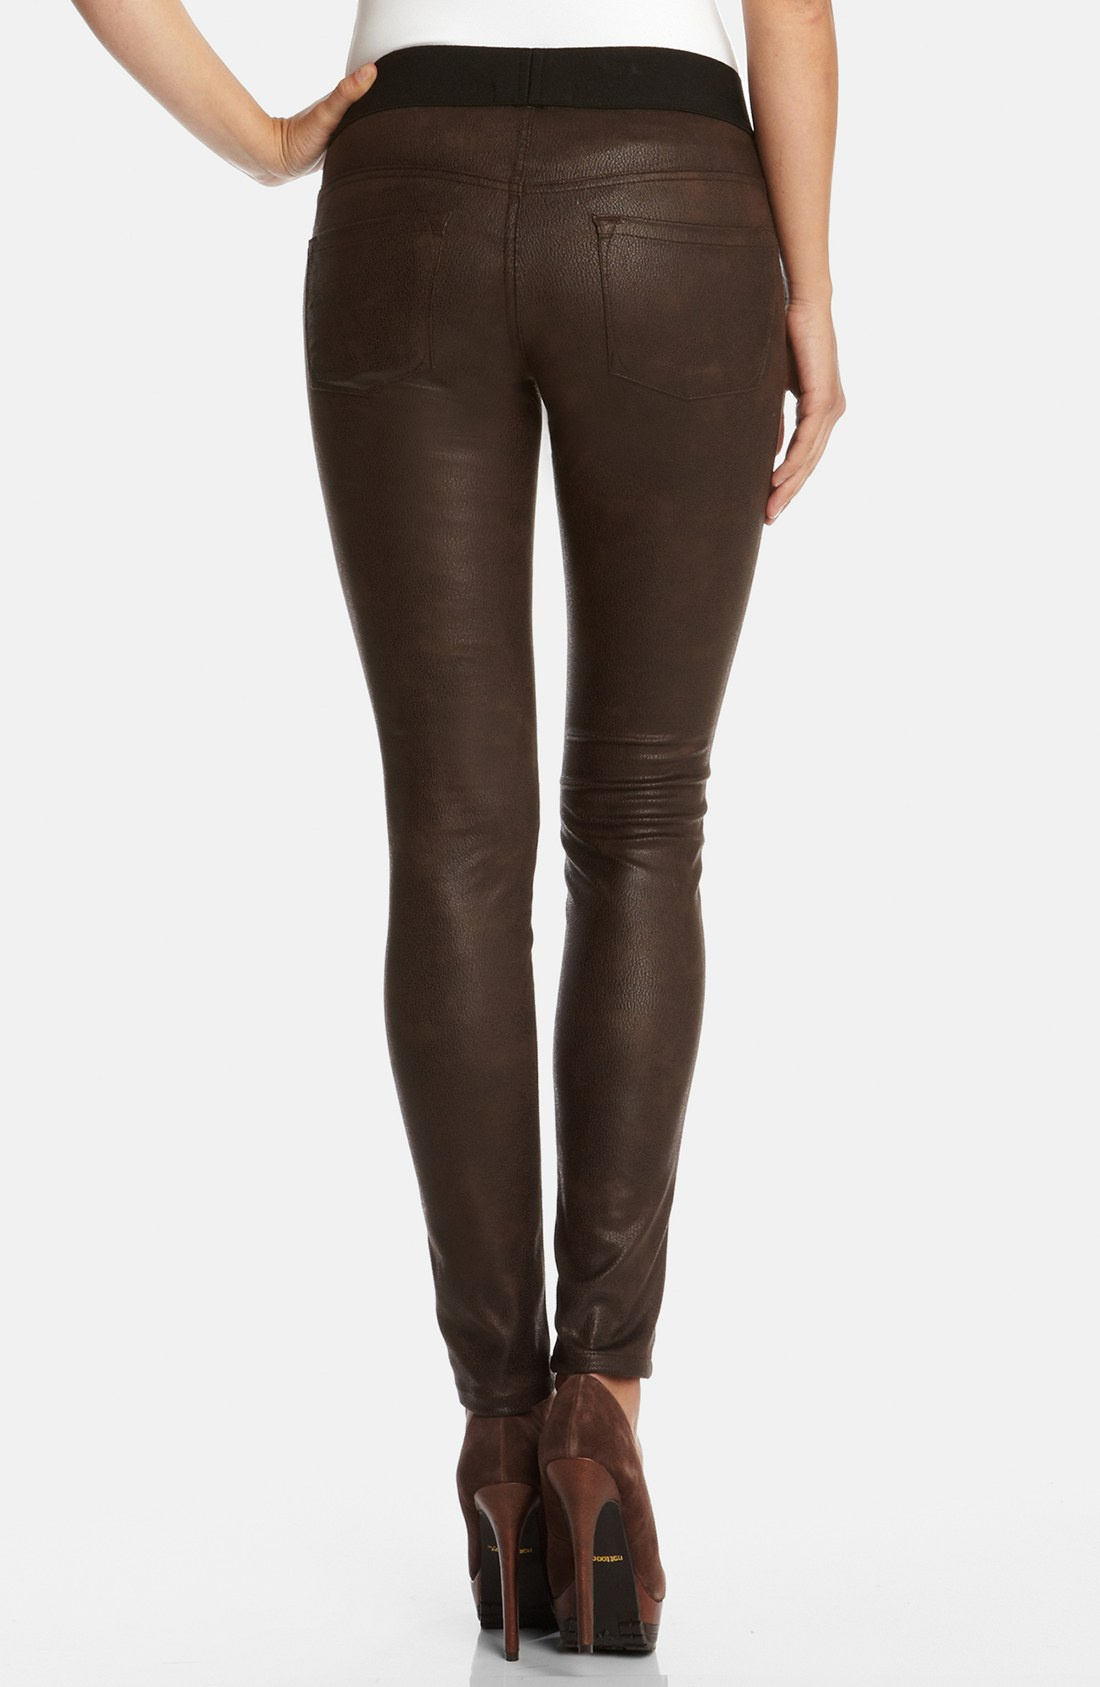 Womens Chocolate Brown Jeans